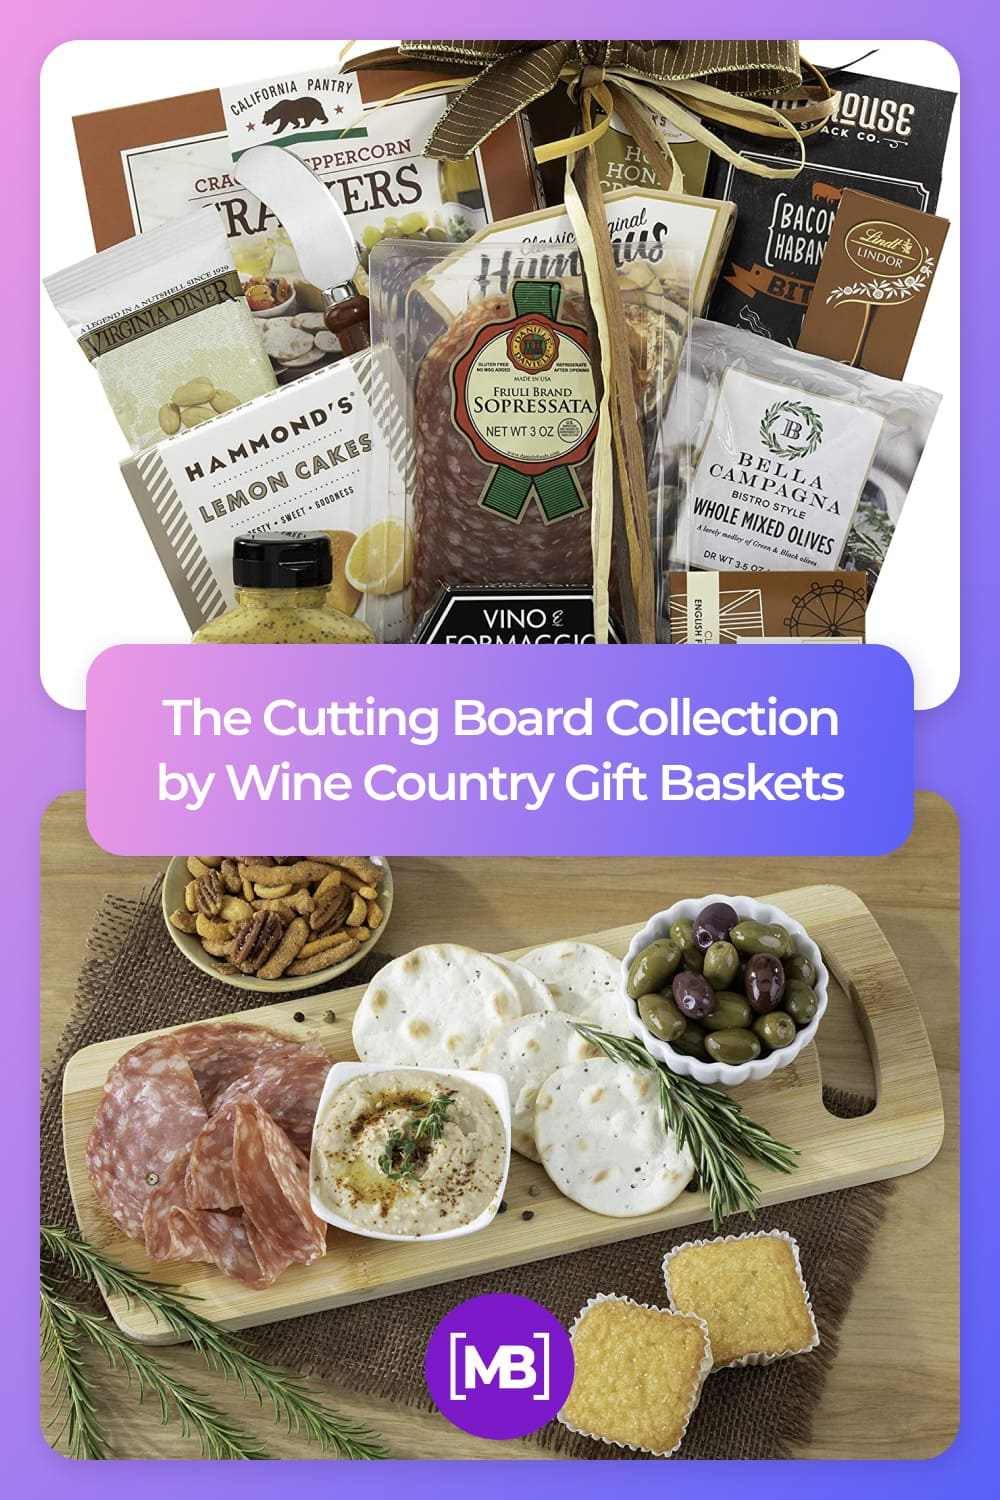 Wine country gift baskets gourmet cheese and salami gift.